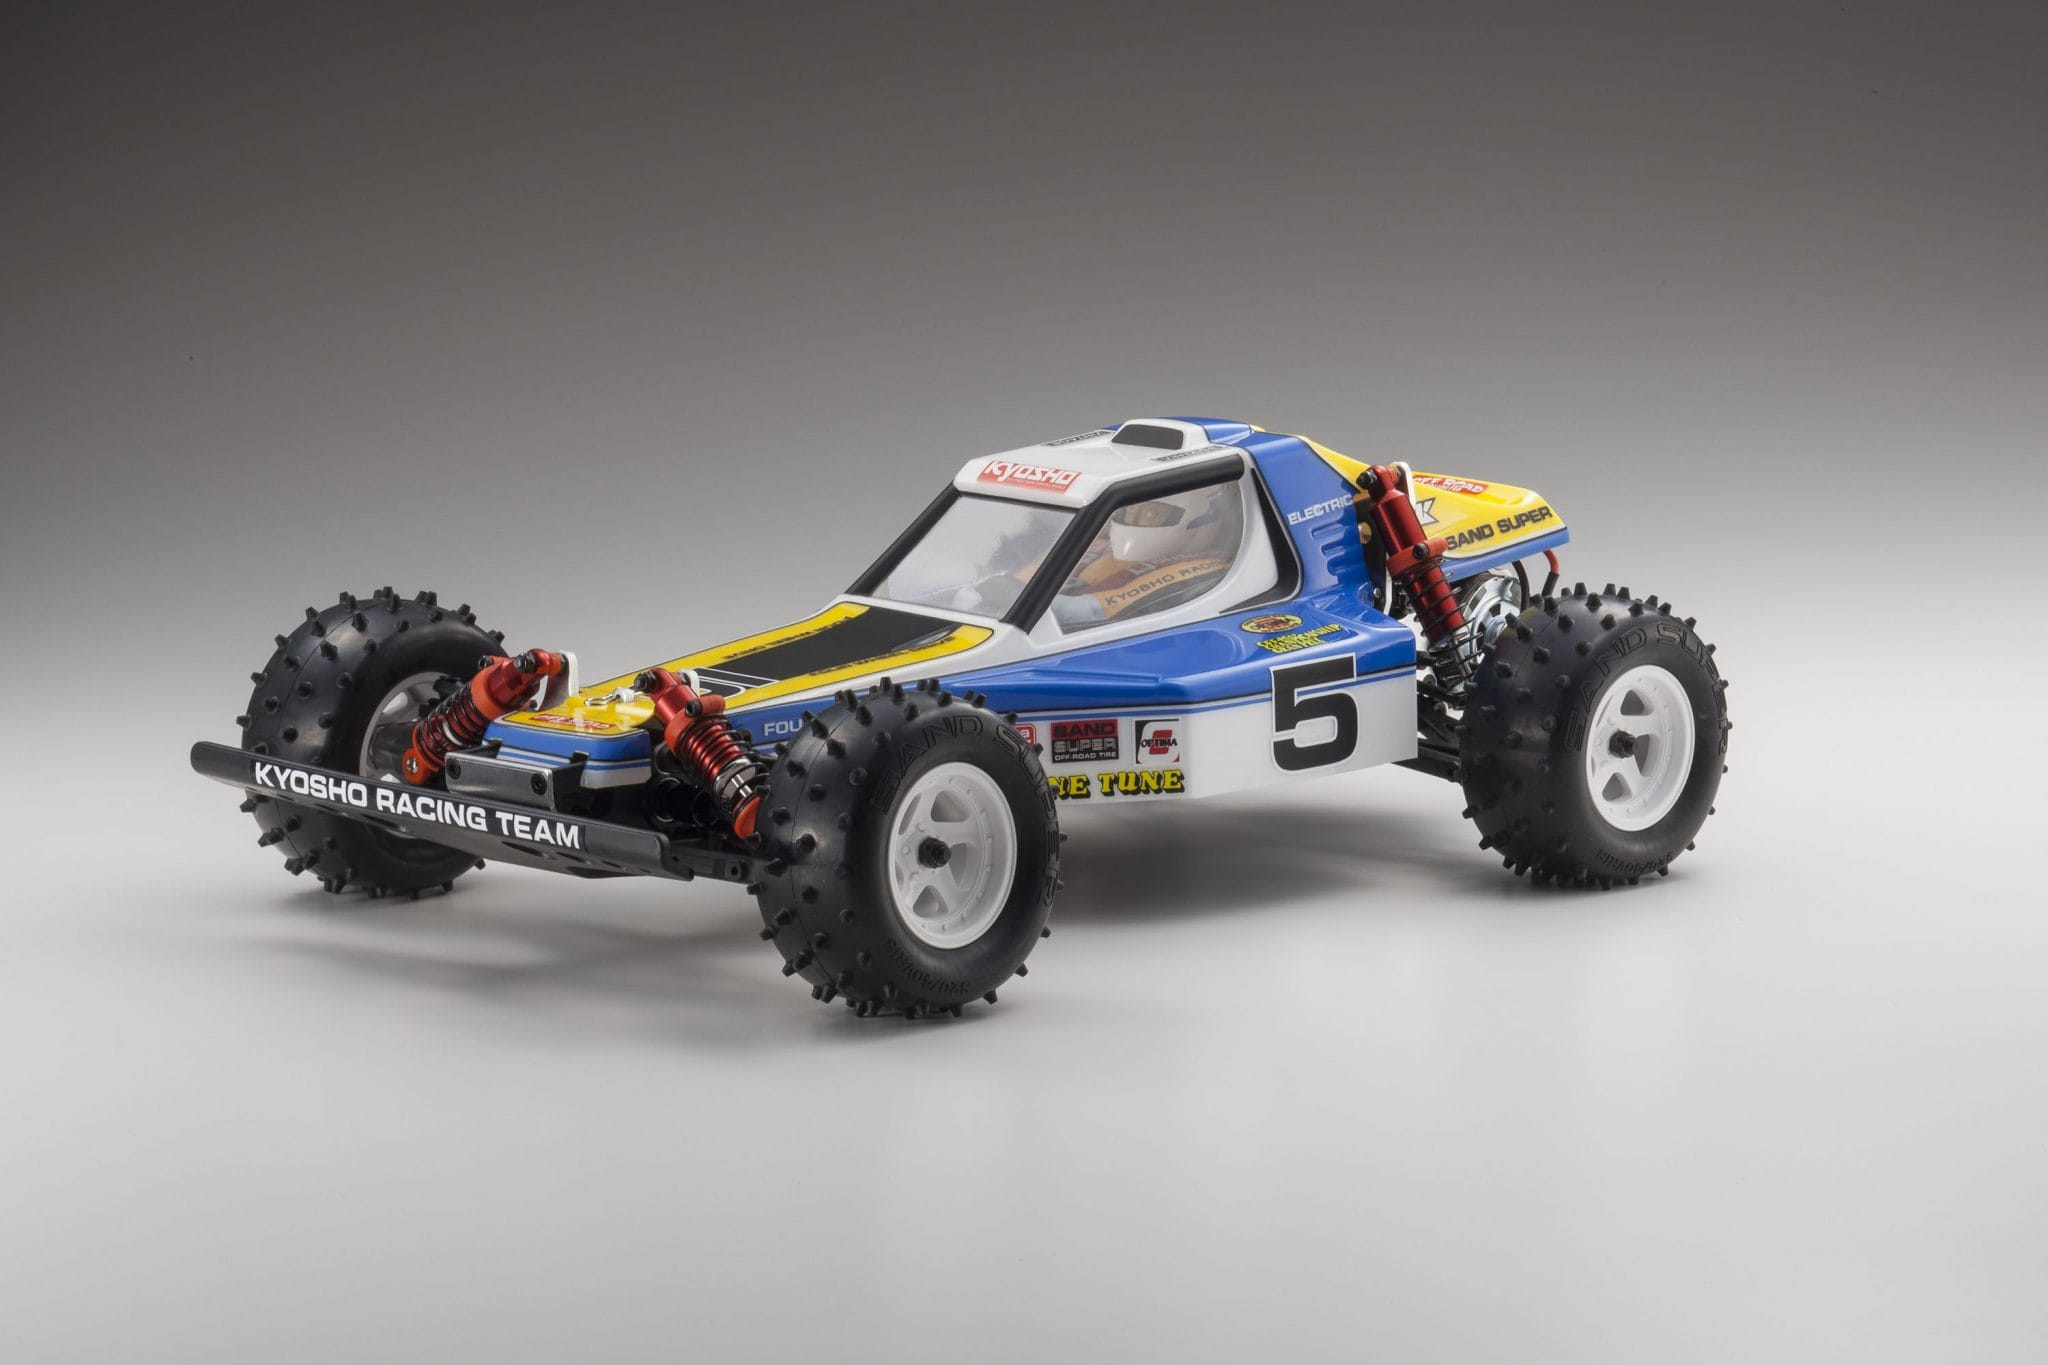 Kyosho Re-releases the Optima 4WD Off-road Buggy Kit - RC Newb